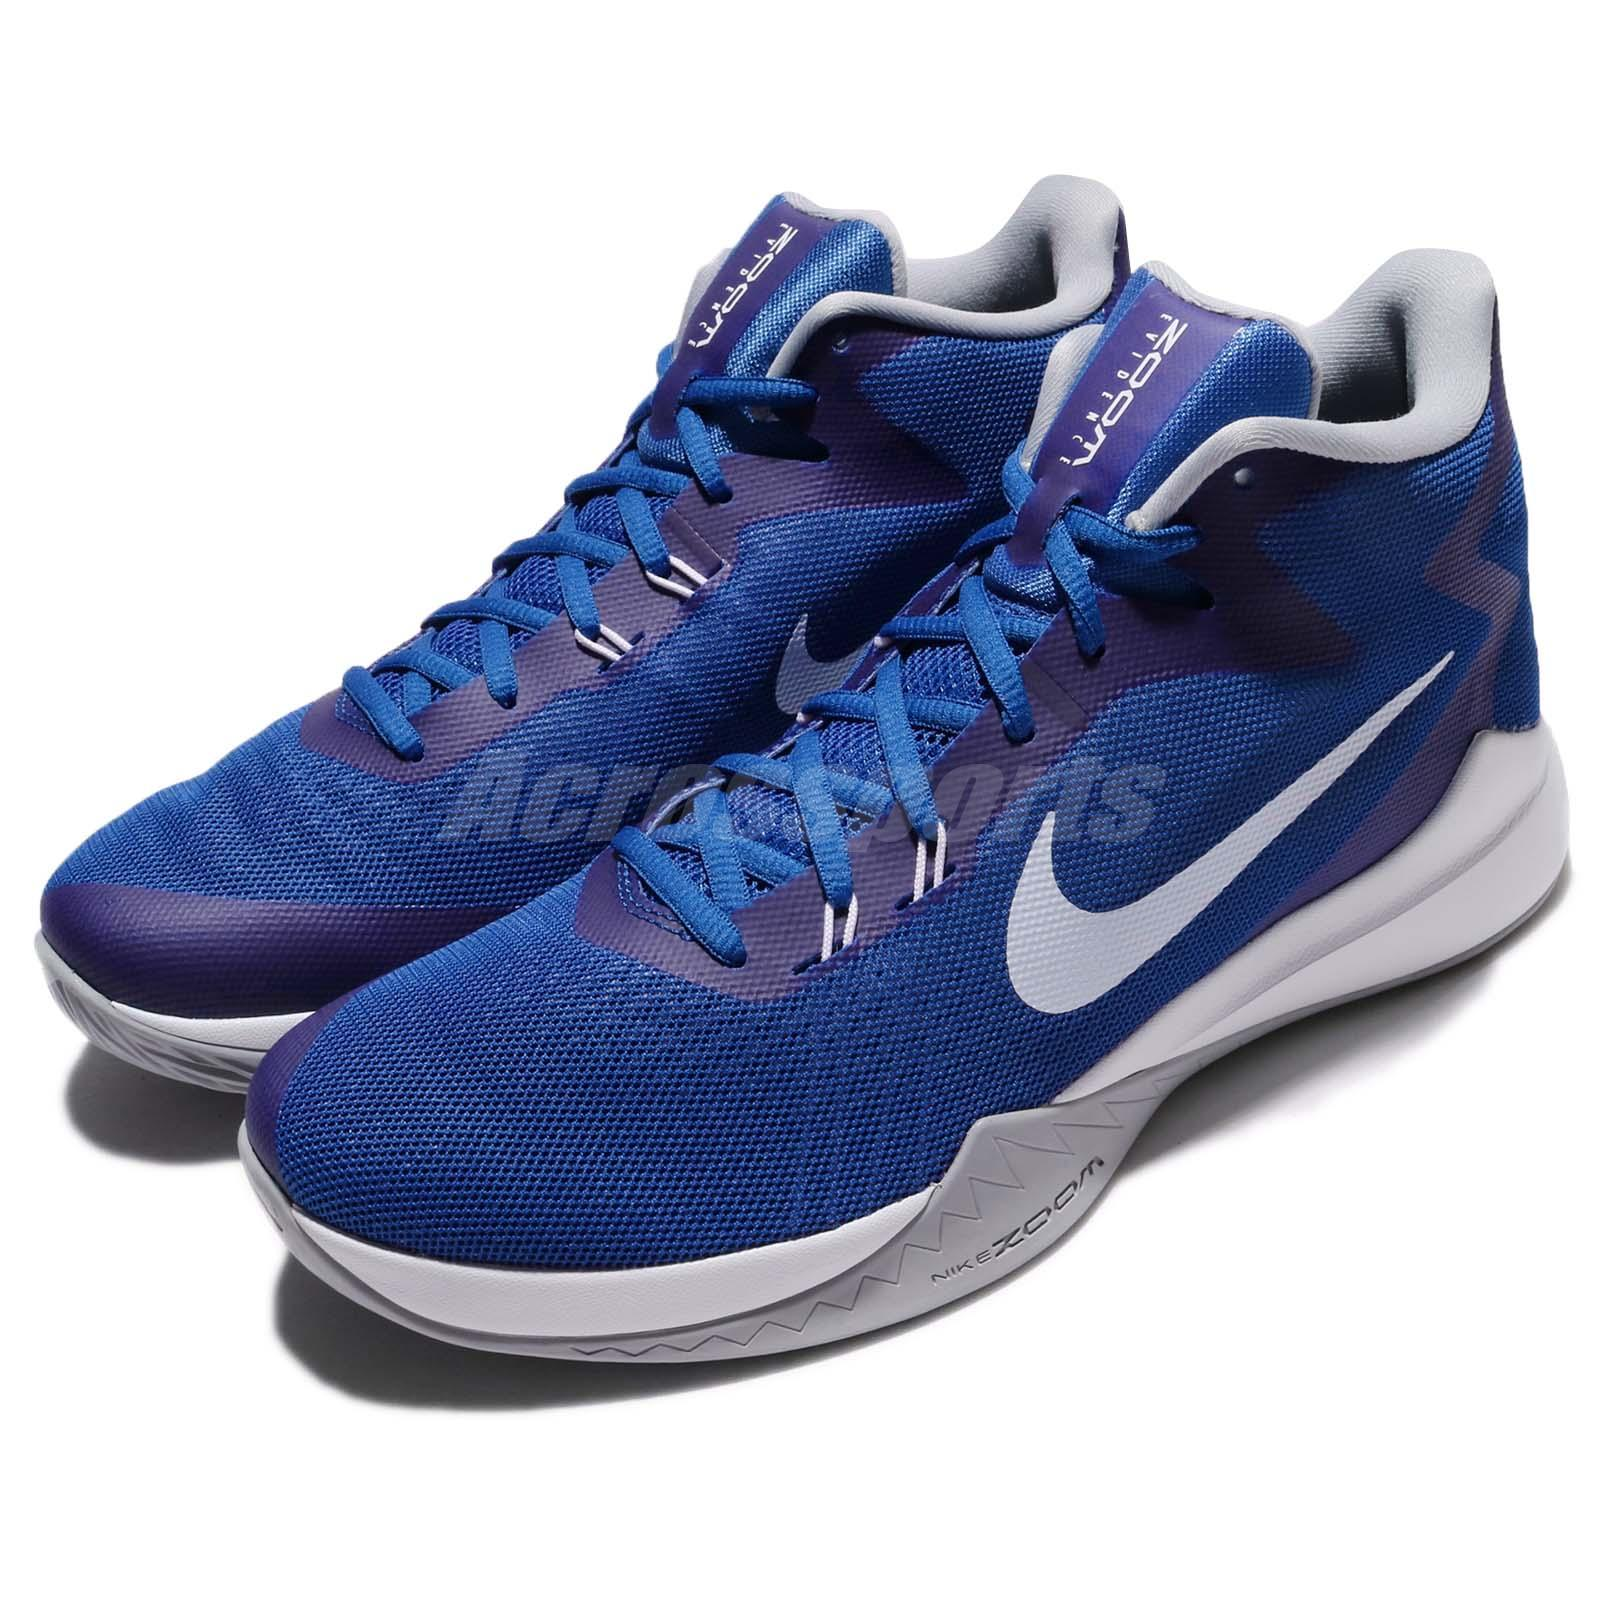 big sale 41dc5 31f9f Details about Nike Zoom Evidence Game Blue Wolf Grey Men Basketball Shoes  Sneakers 852464-401